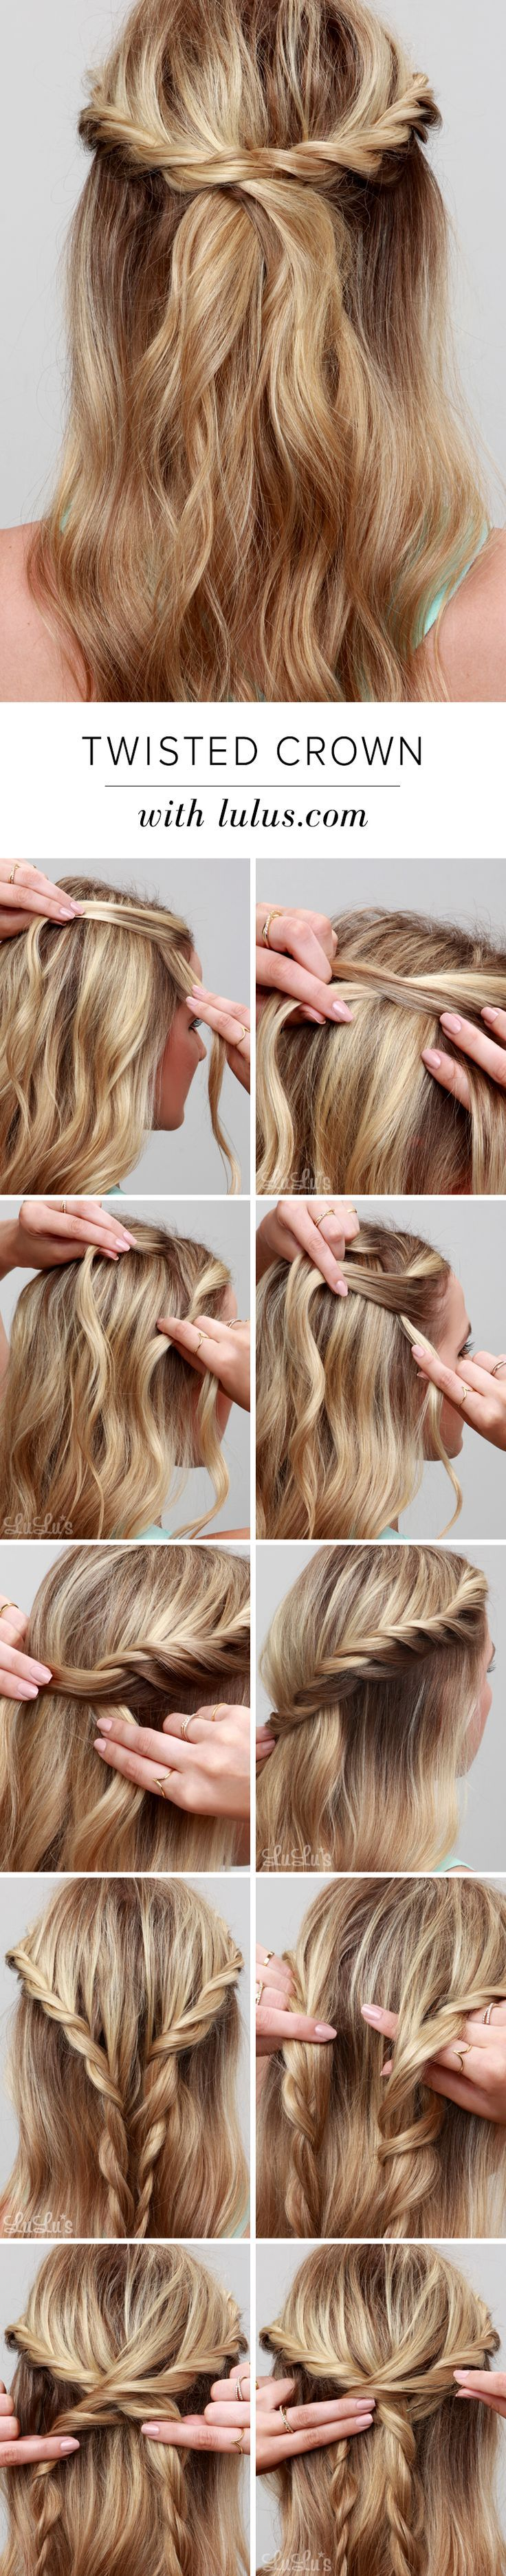 Lulus How-To: Twisted Crown Hair Tutorial #typesofhairstyles